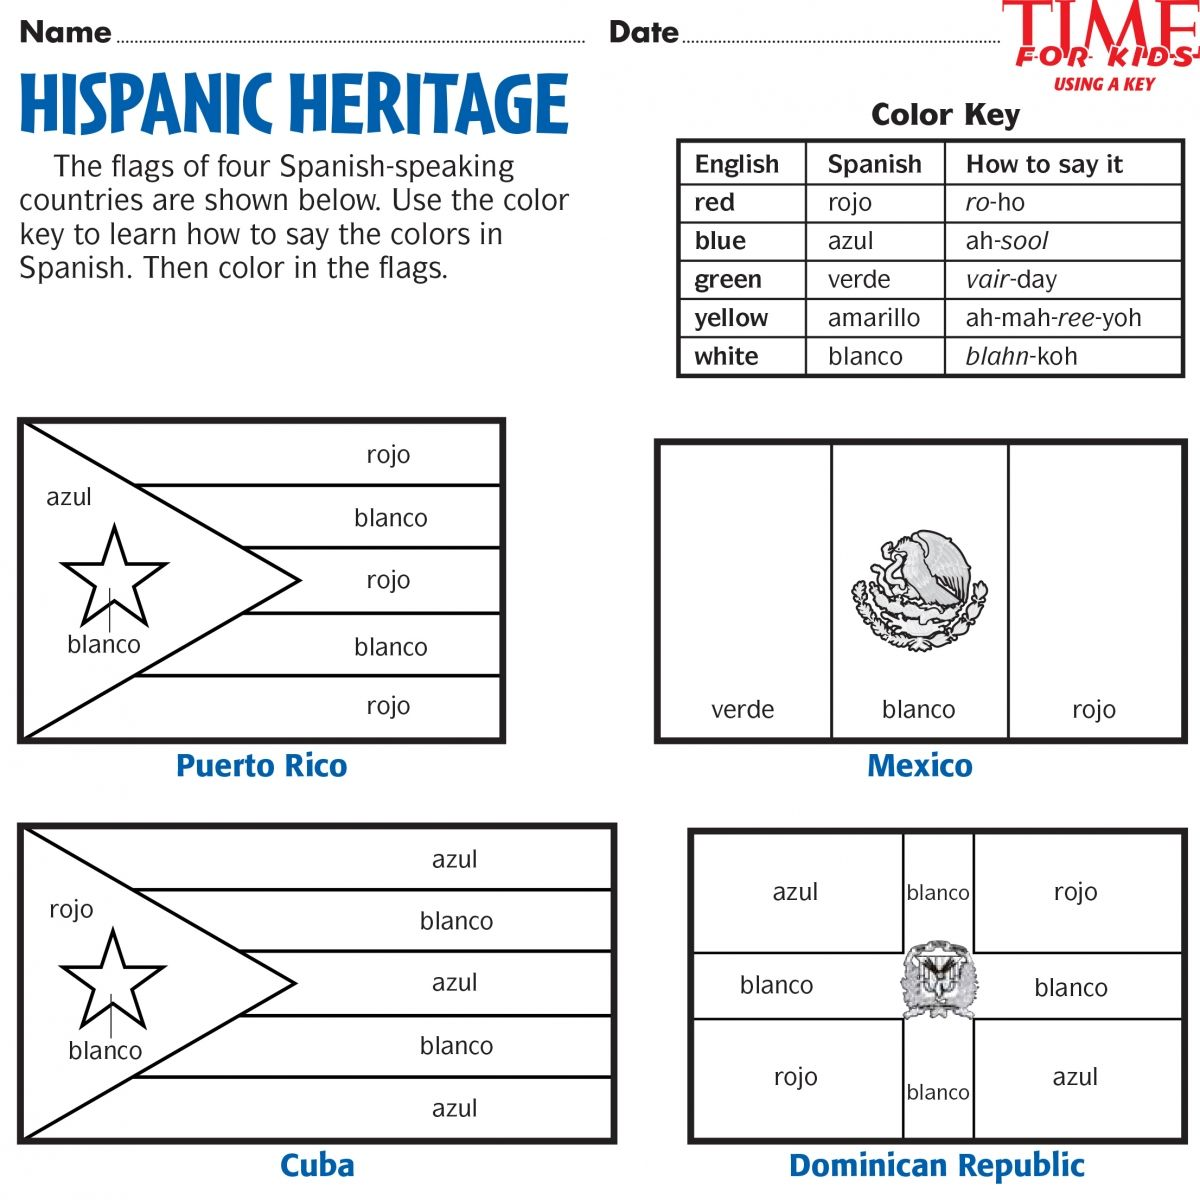 Printables for hispanic heritage month time for kids